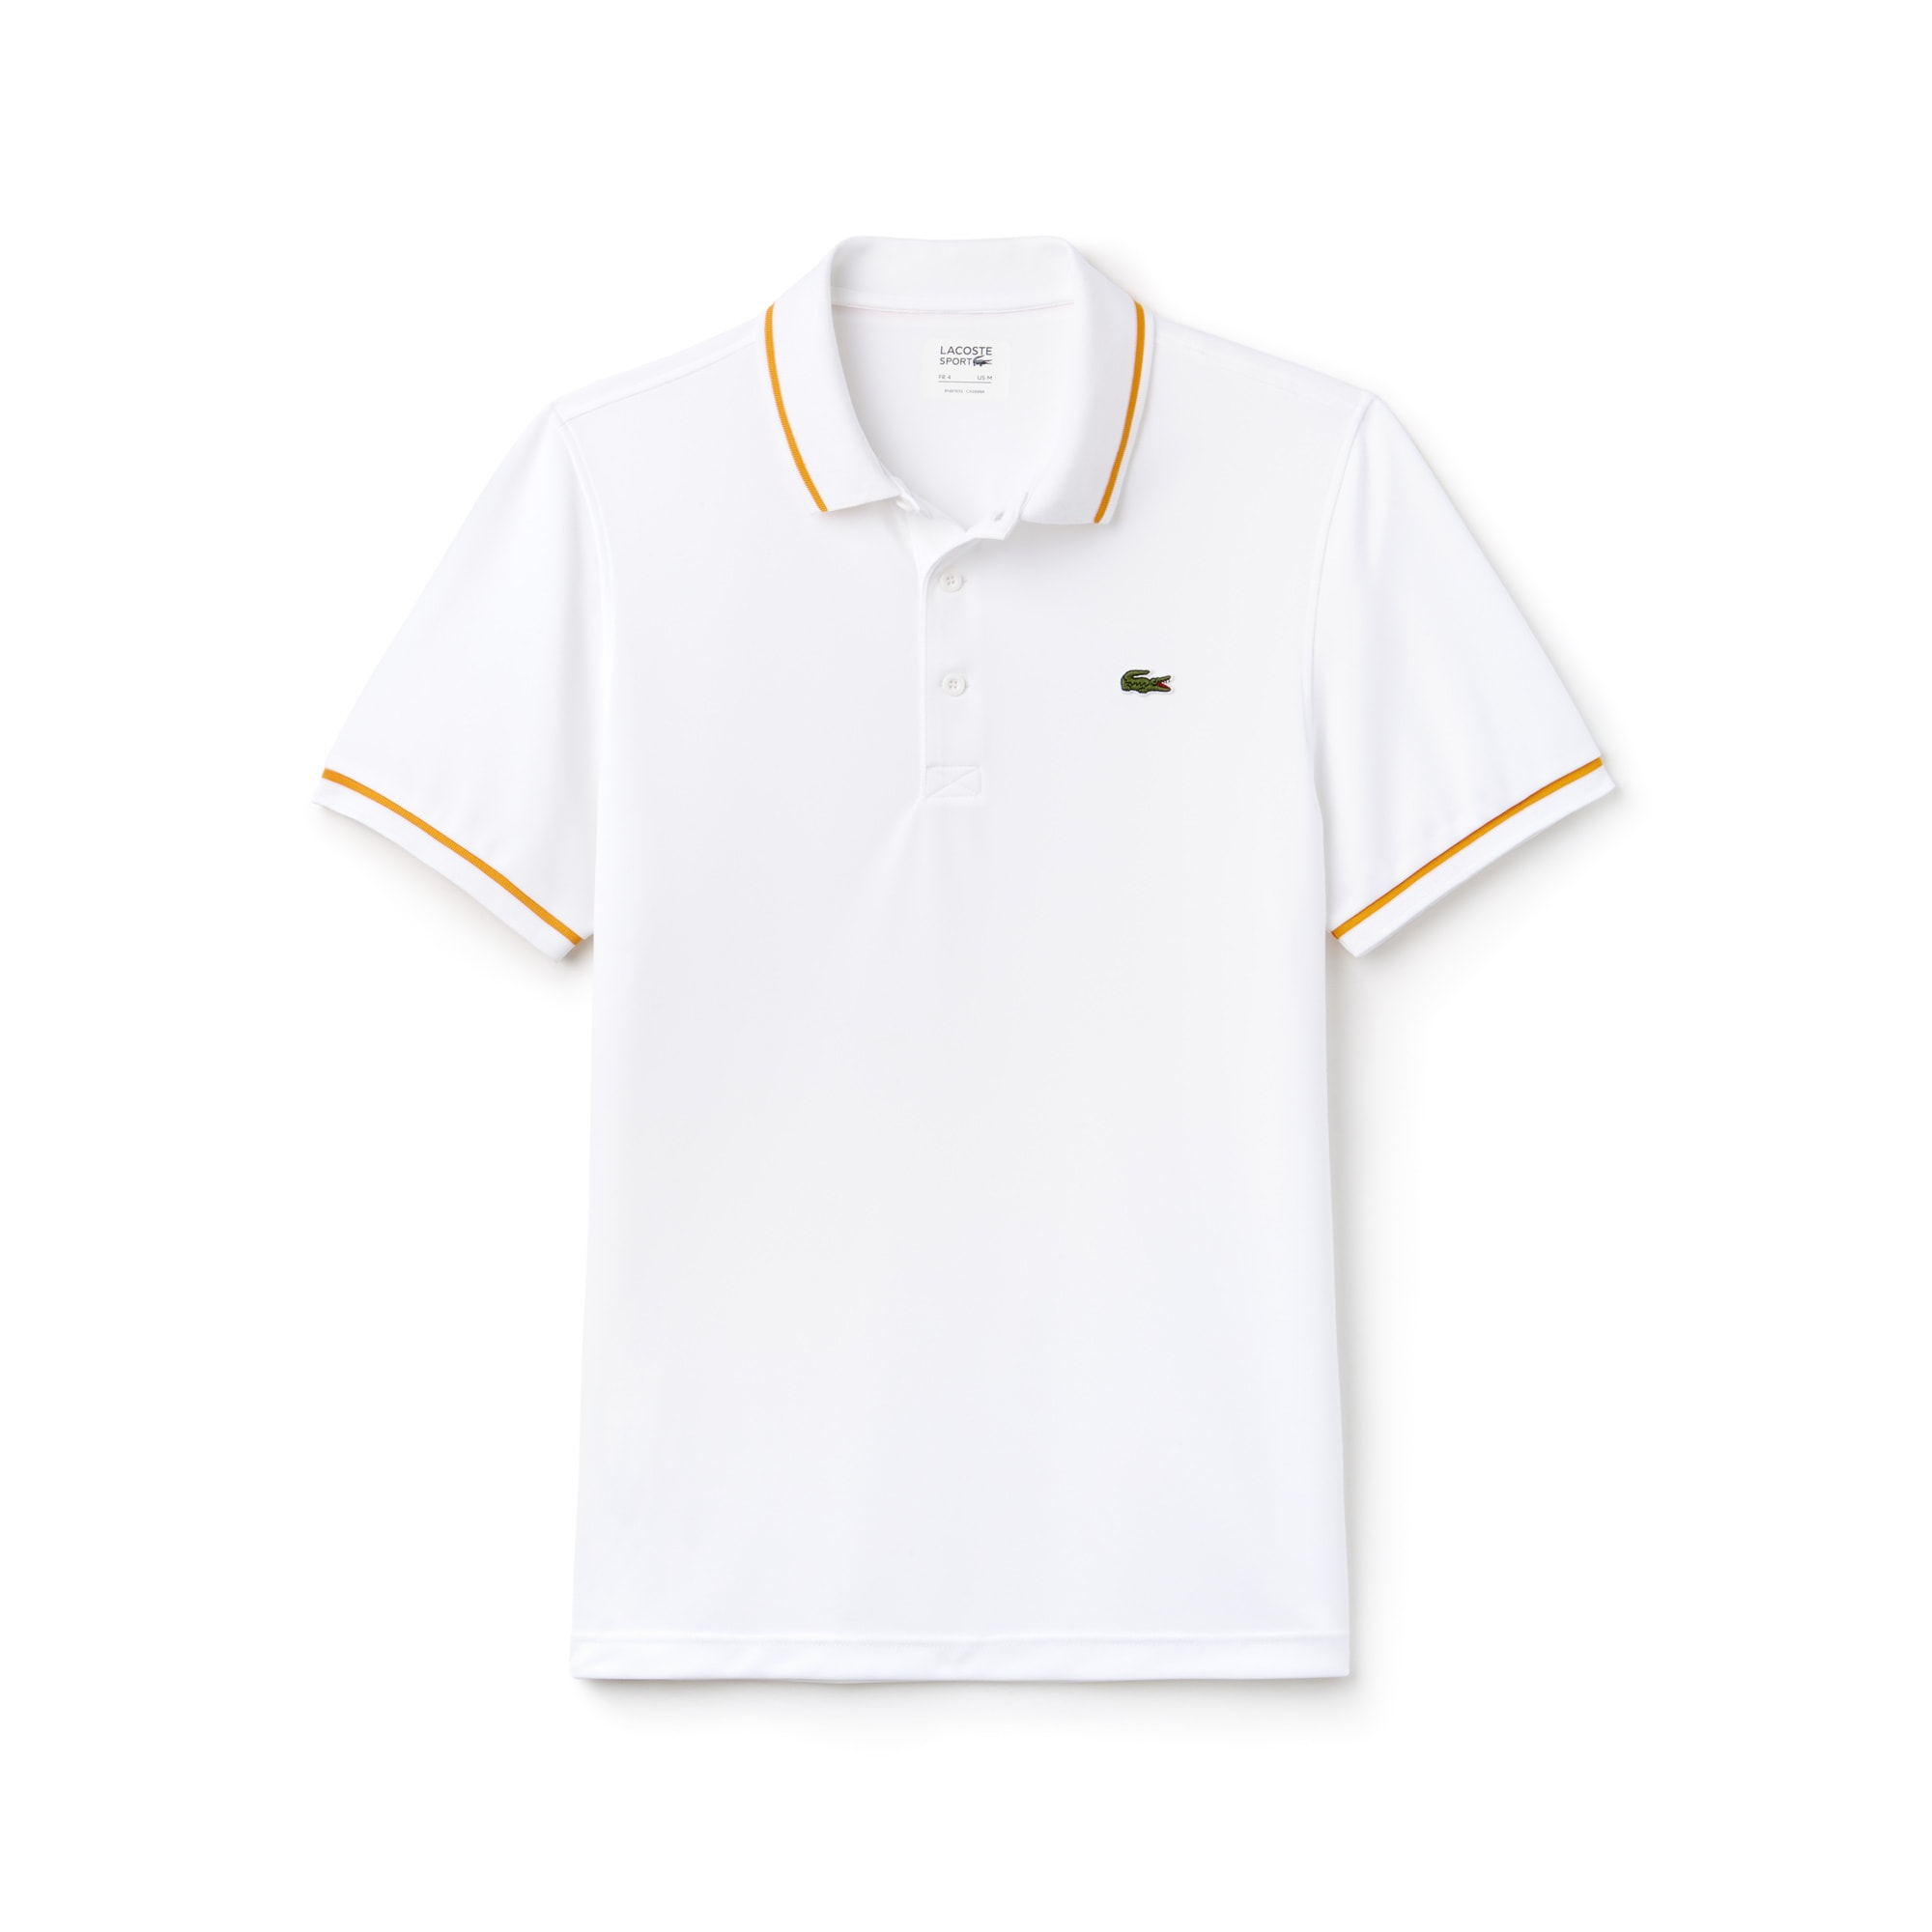 Men's Lacoste SPORT Tennis Piped Technical Piqué Polo Shirt